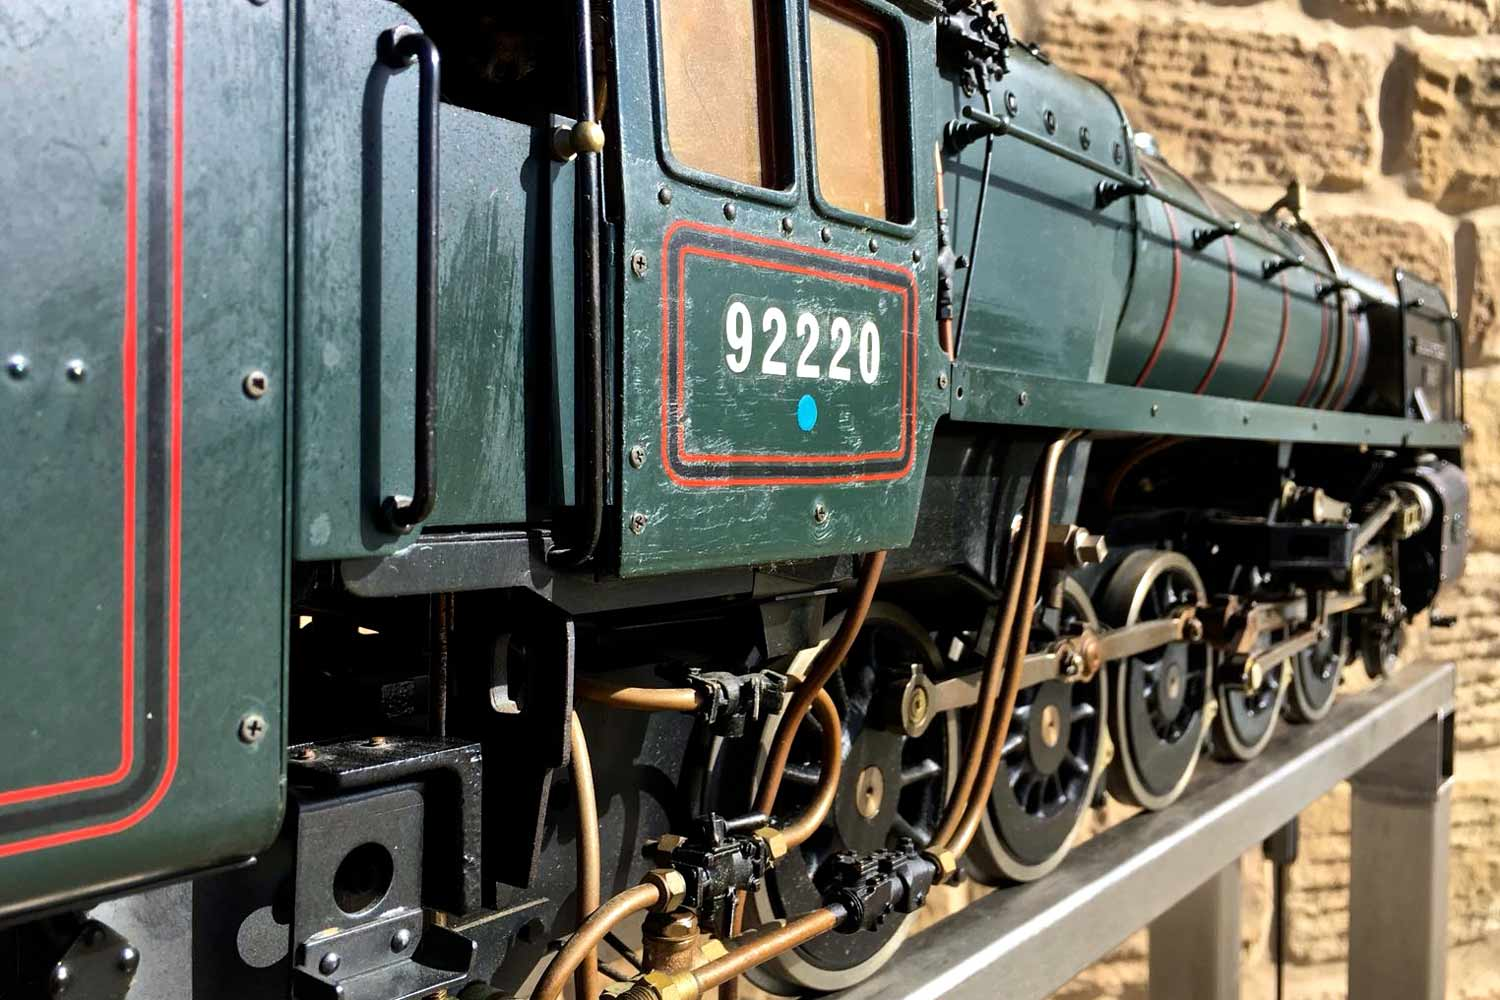 test 3-and-a-half-inch-BR-9F-OS-live-steam-locomotive-for-sale-36